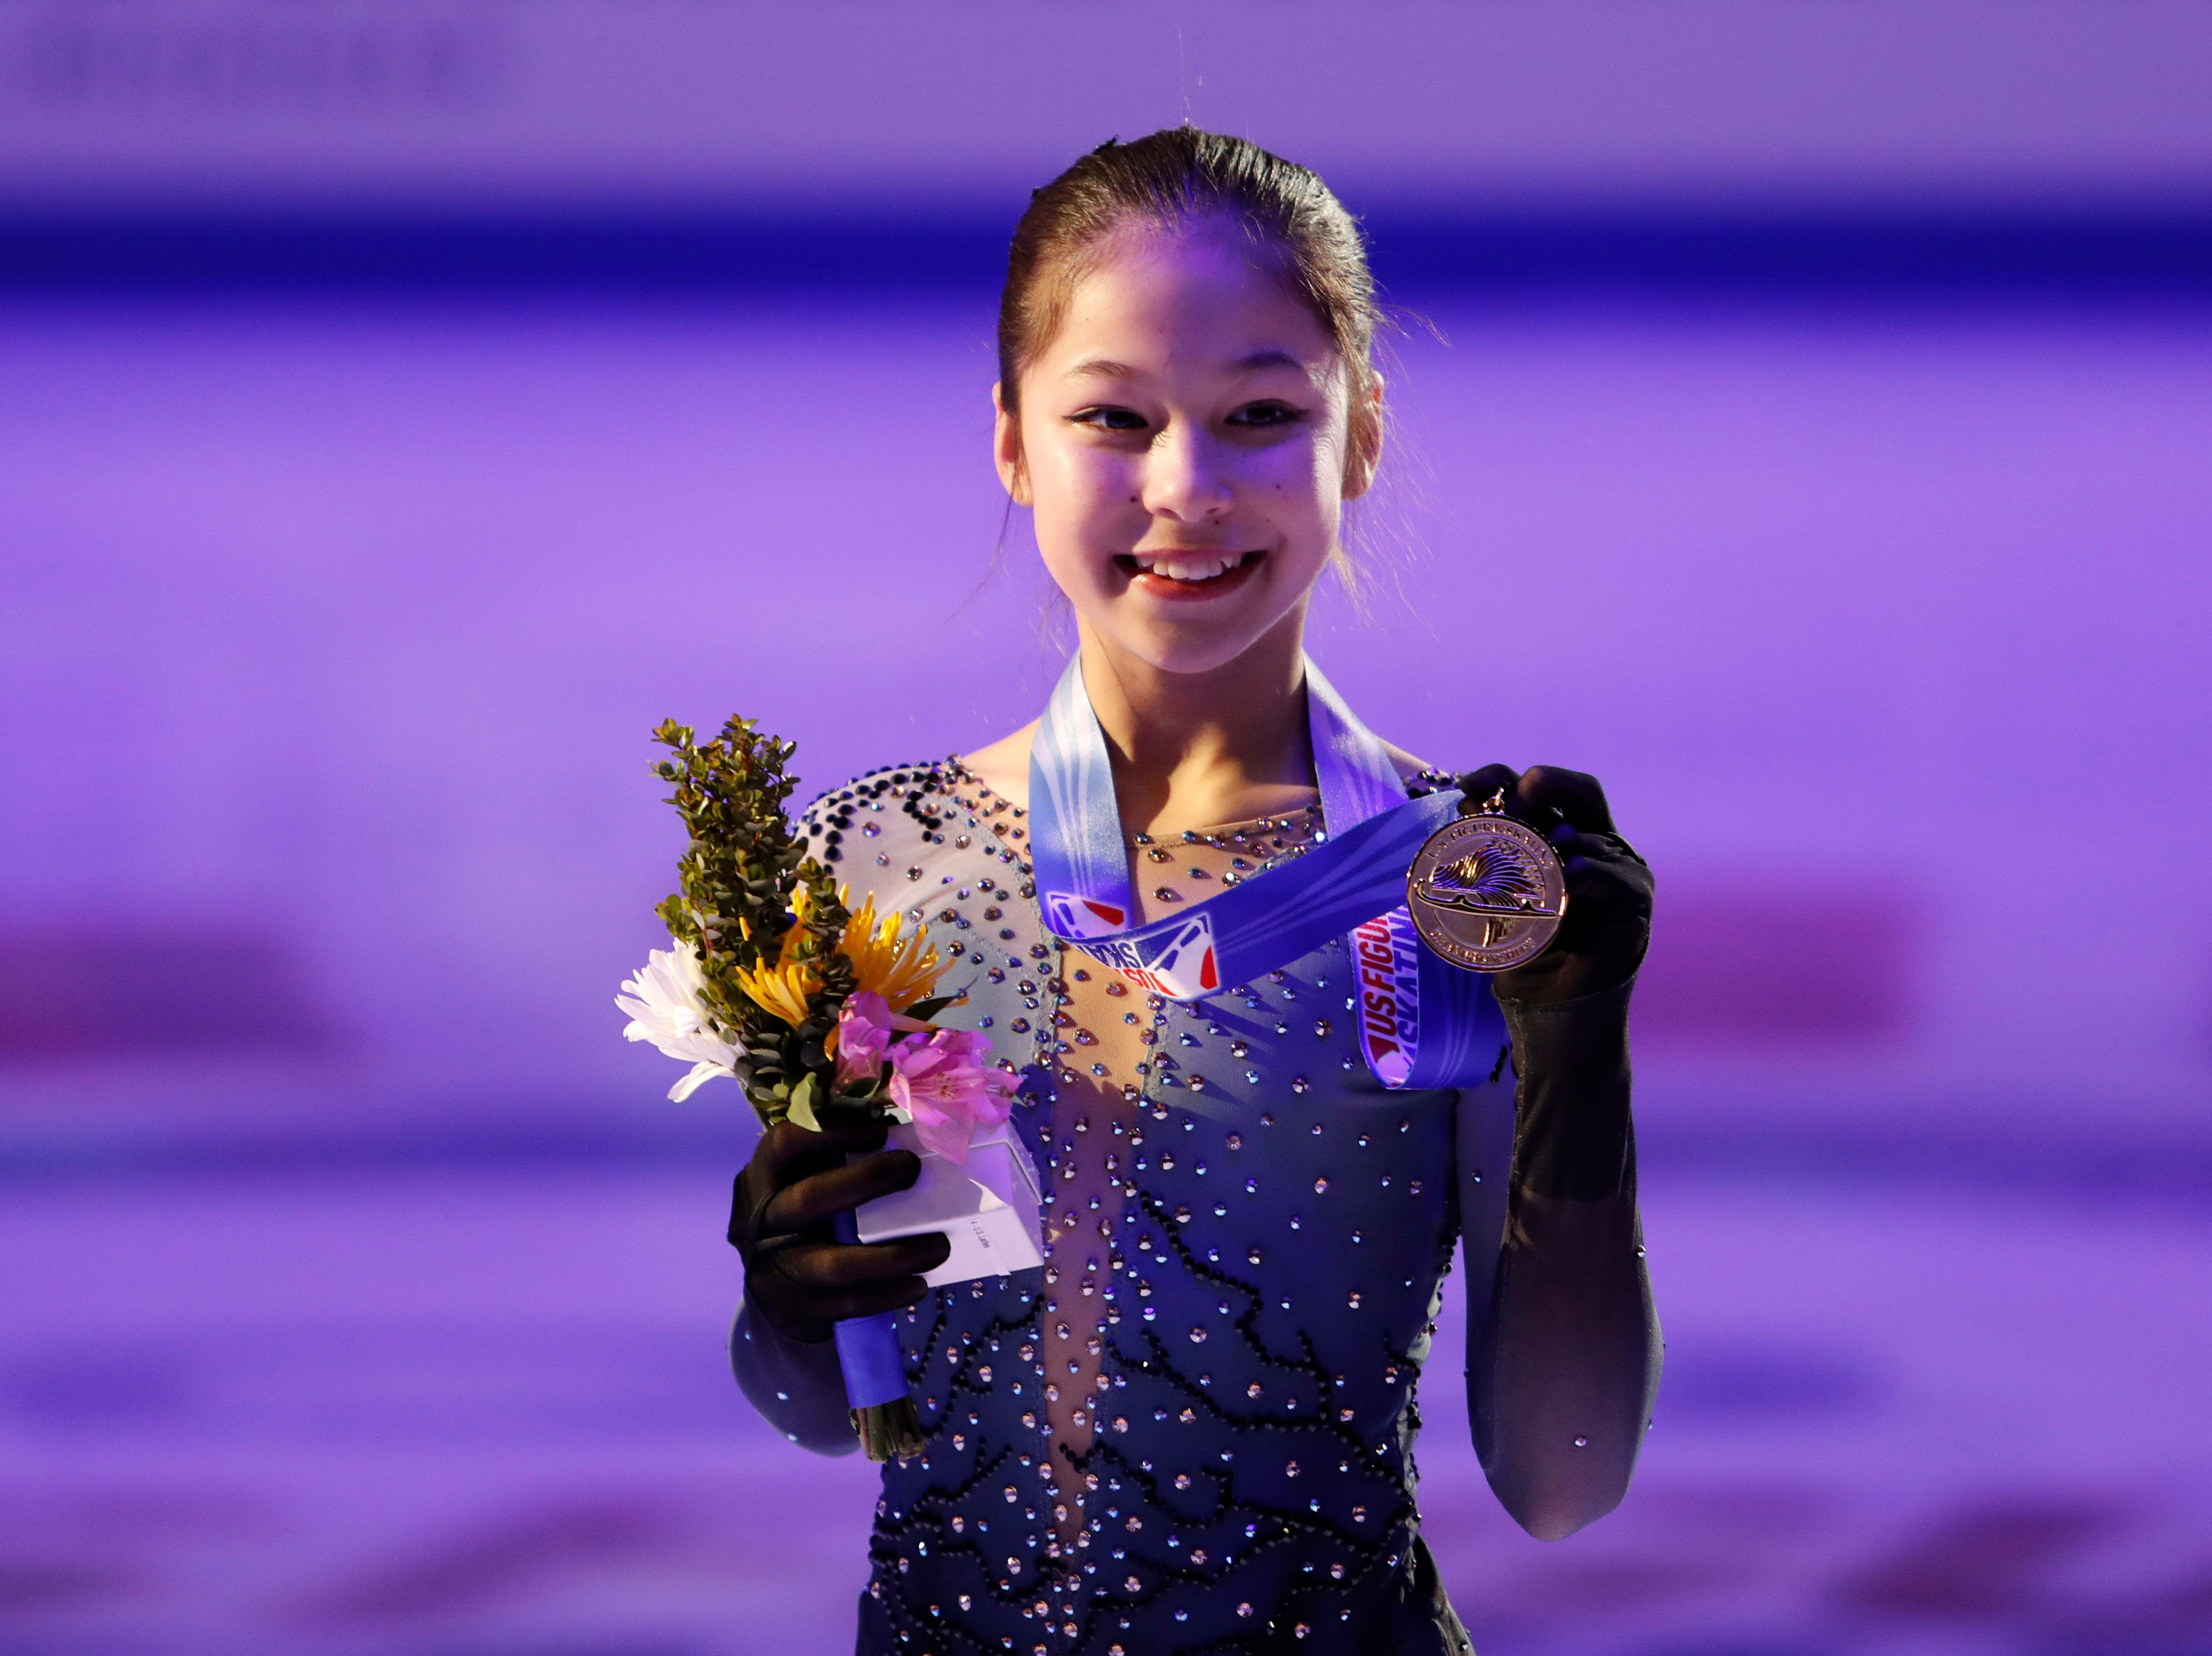 Alysa Liu poses with her gold medal after winning the ladies figure skating championship at the 2019 U.S. Figure Skating Championships at Little Caesars Arena.